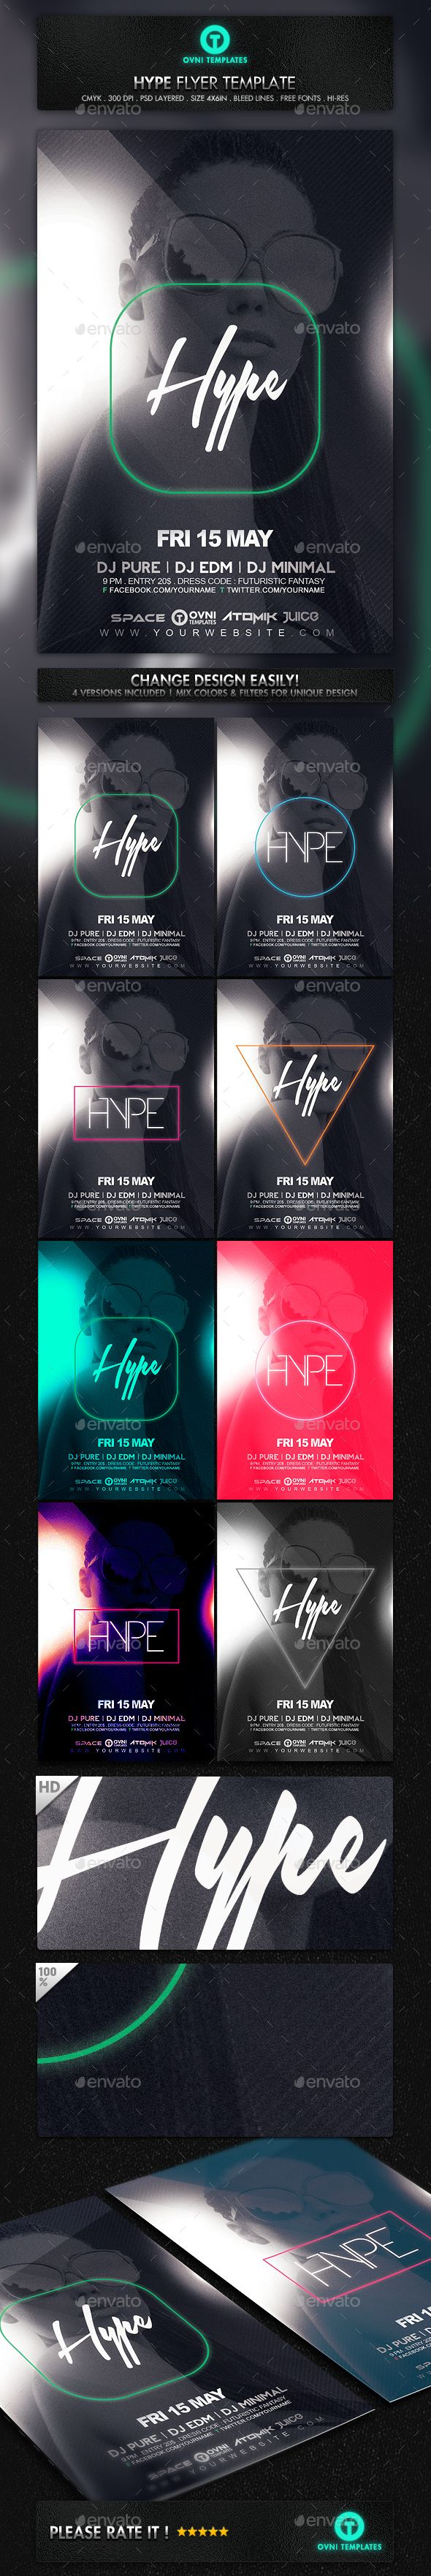 Hype Minimal Style Futuristic Girl Flyer Template  #woman #$6